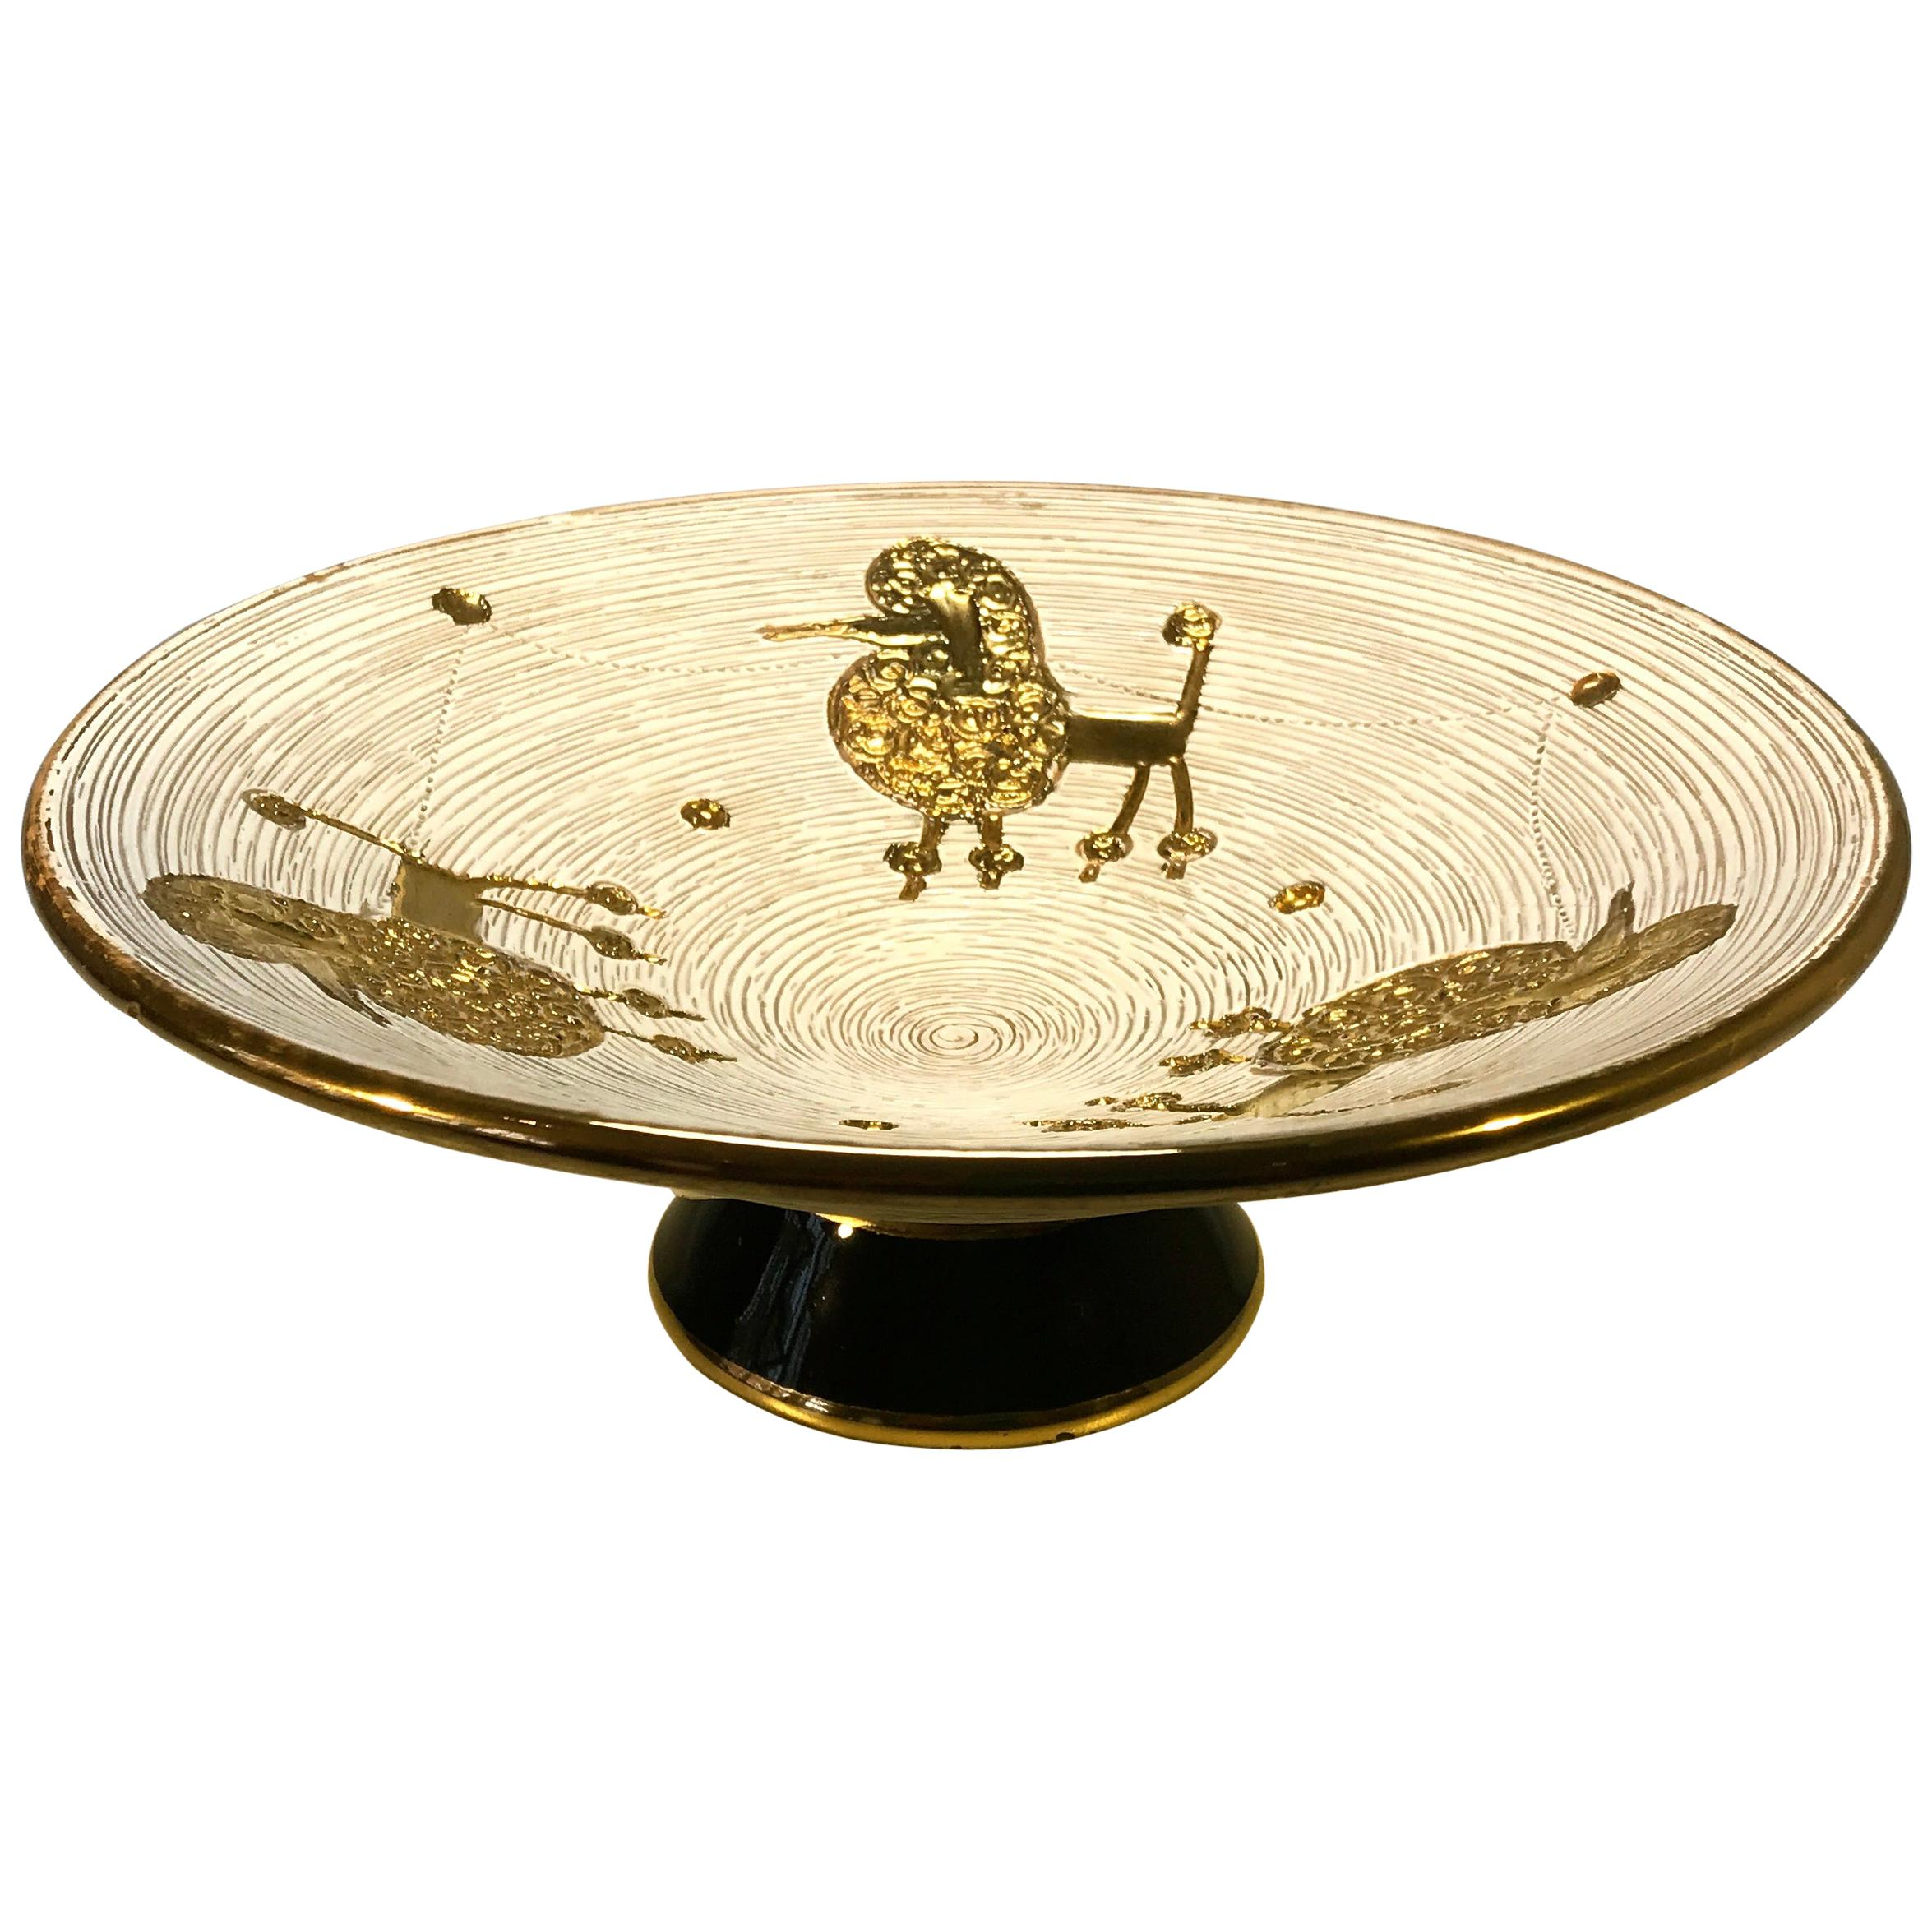 Kitsch Fratelli Fanciullacci Gilded French Poodle Footed Dish, 1950s